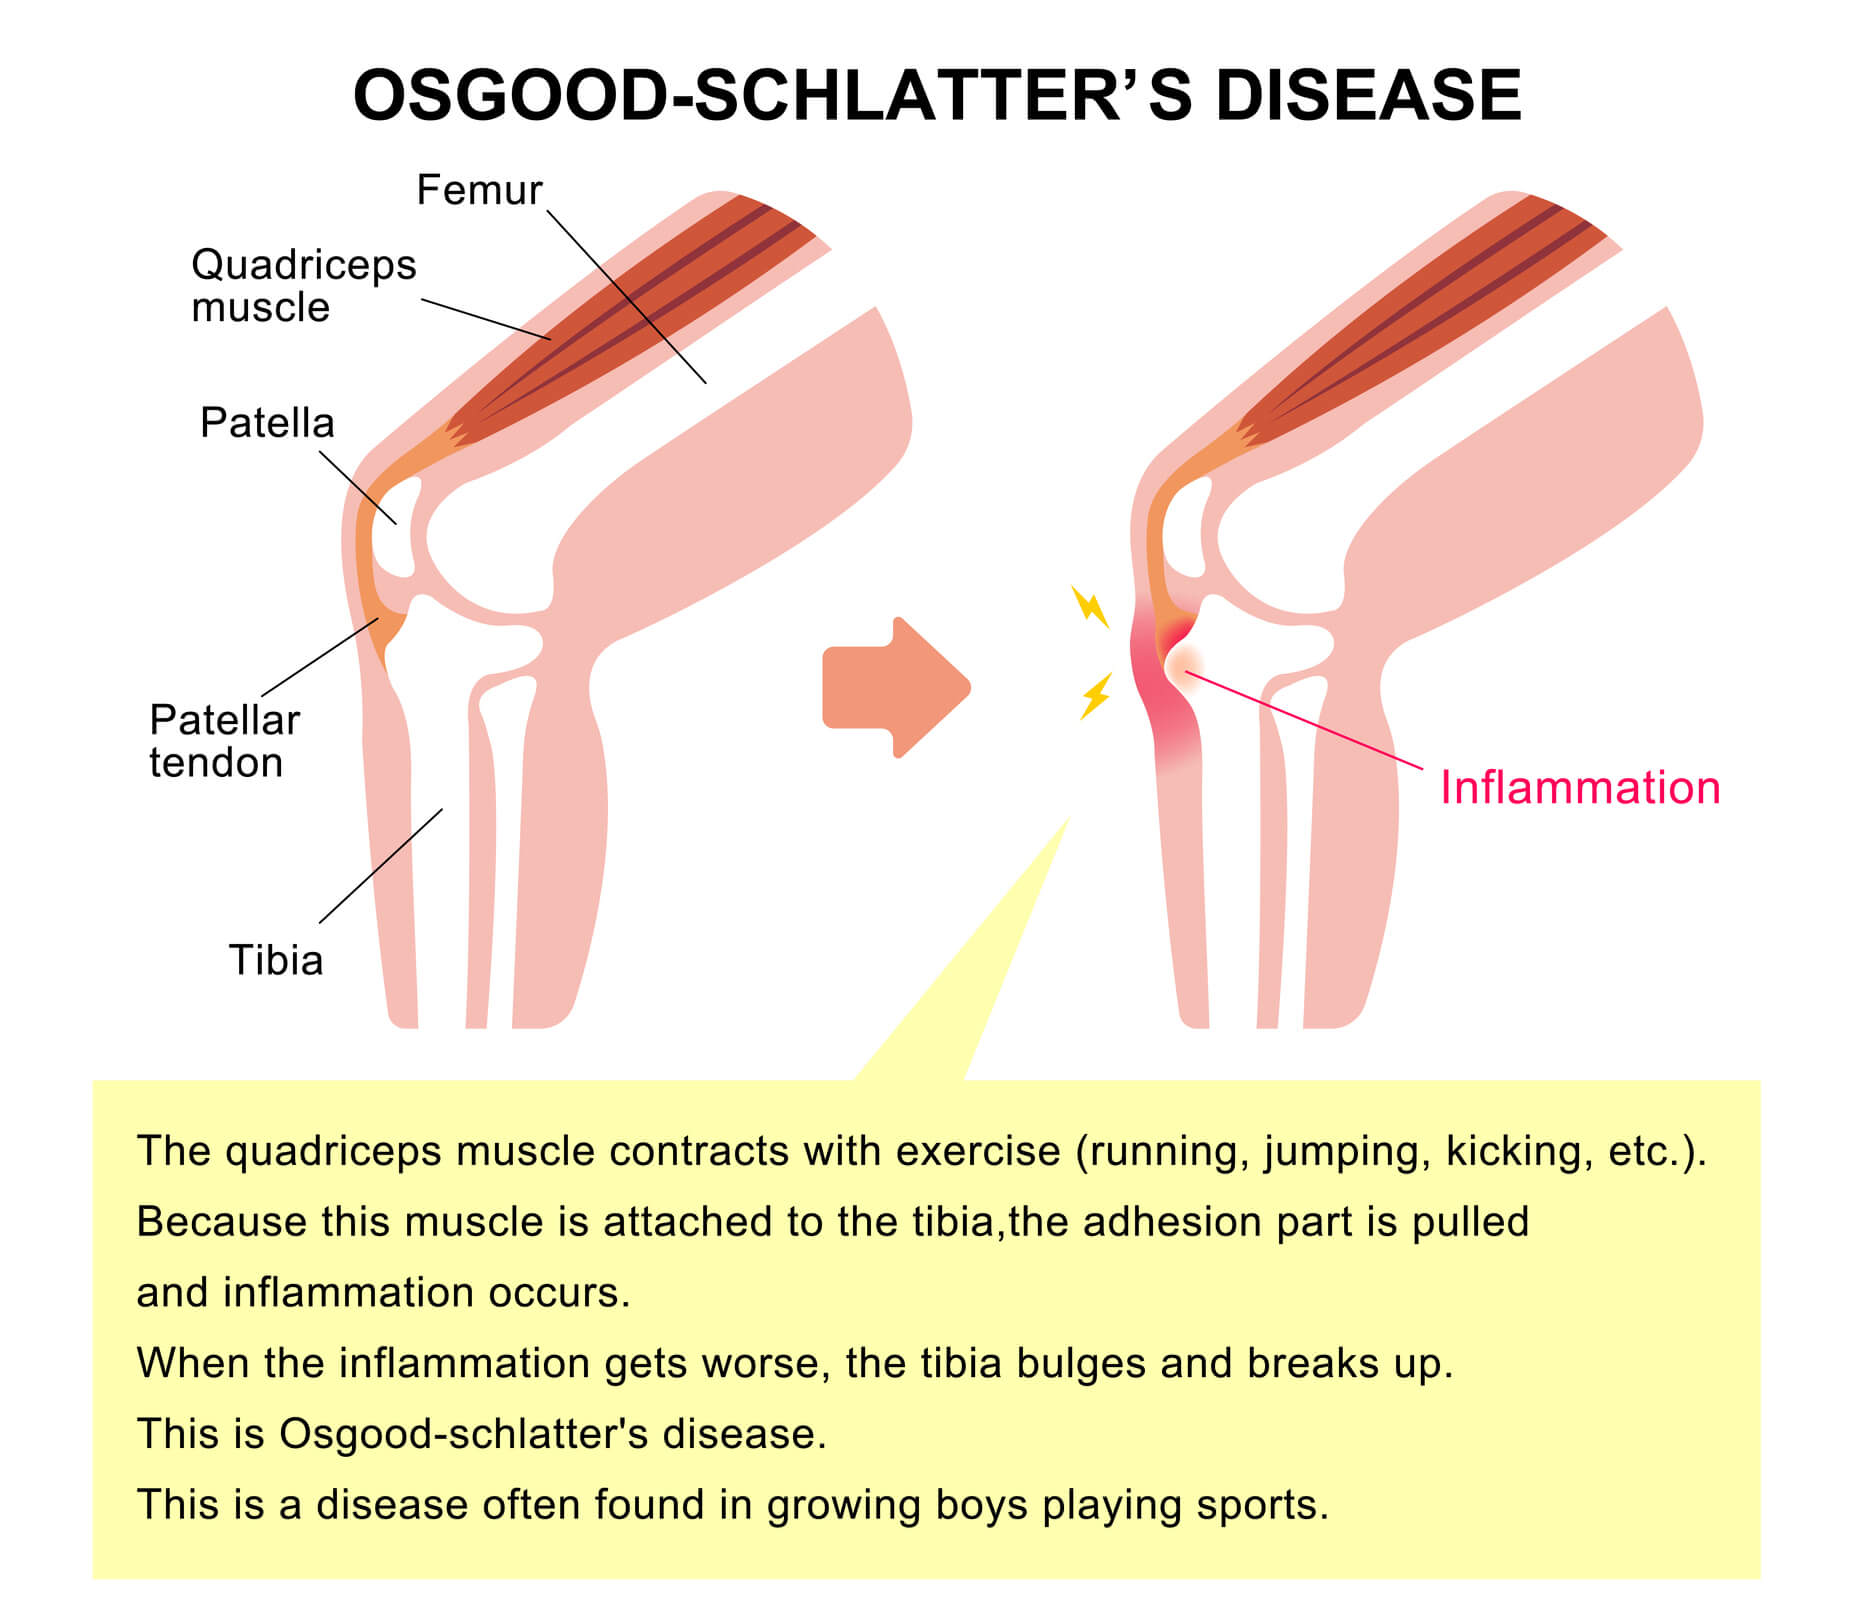 Image of a healthy knee and one affected by Osgood Schlatter Disease